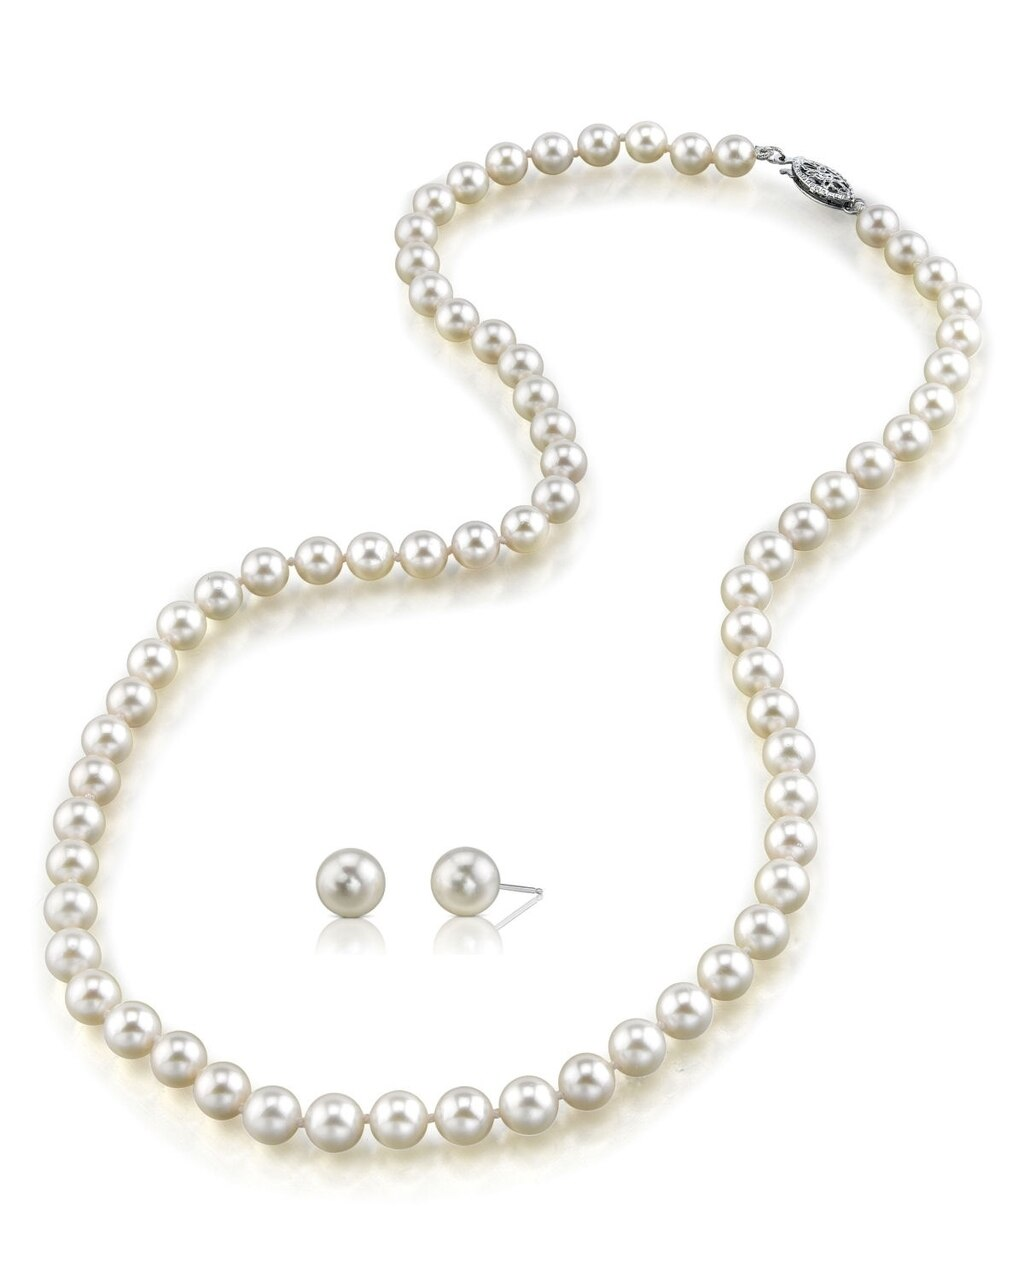 This classic necklace and earring set features 8.0-8.5mm Japanese Akoya pearls